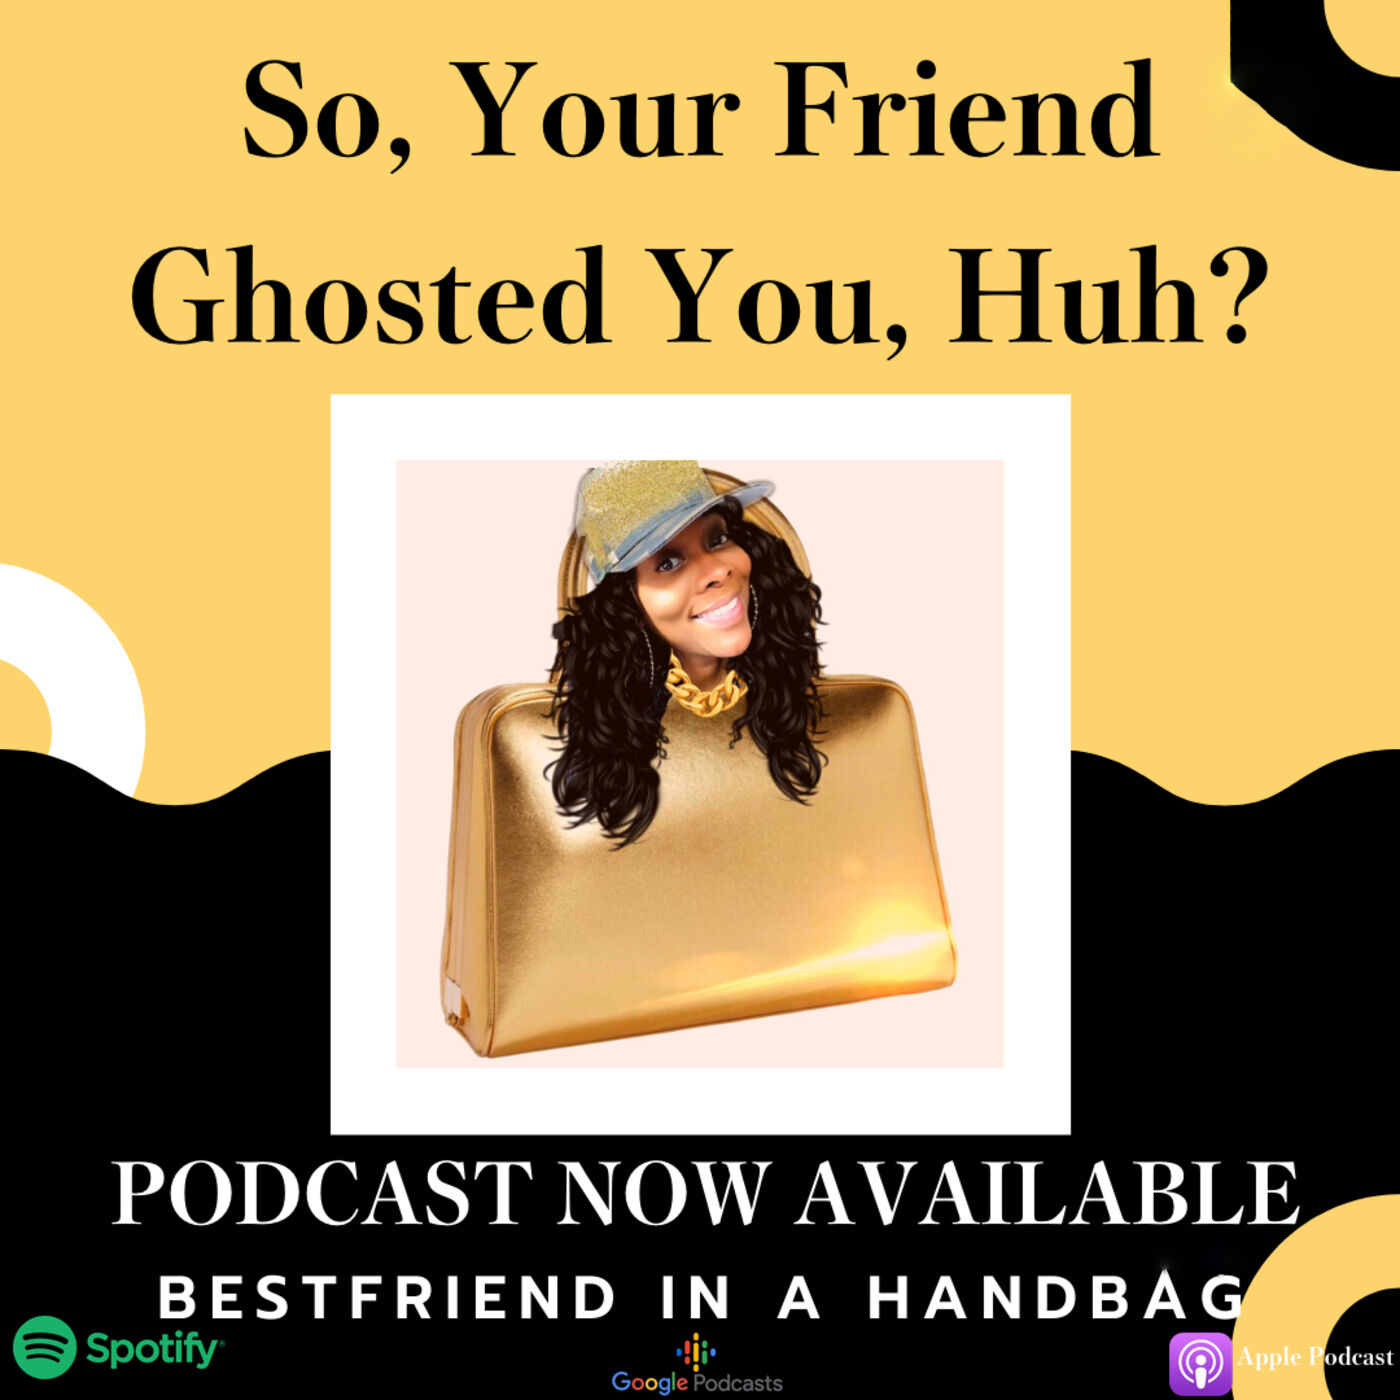 So Your Friend Ghosted You, Huh?